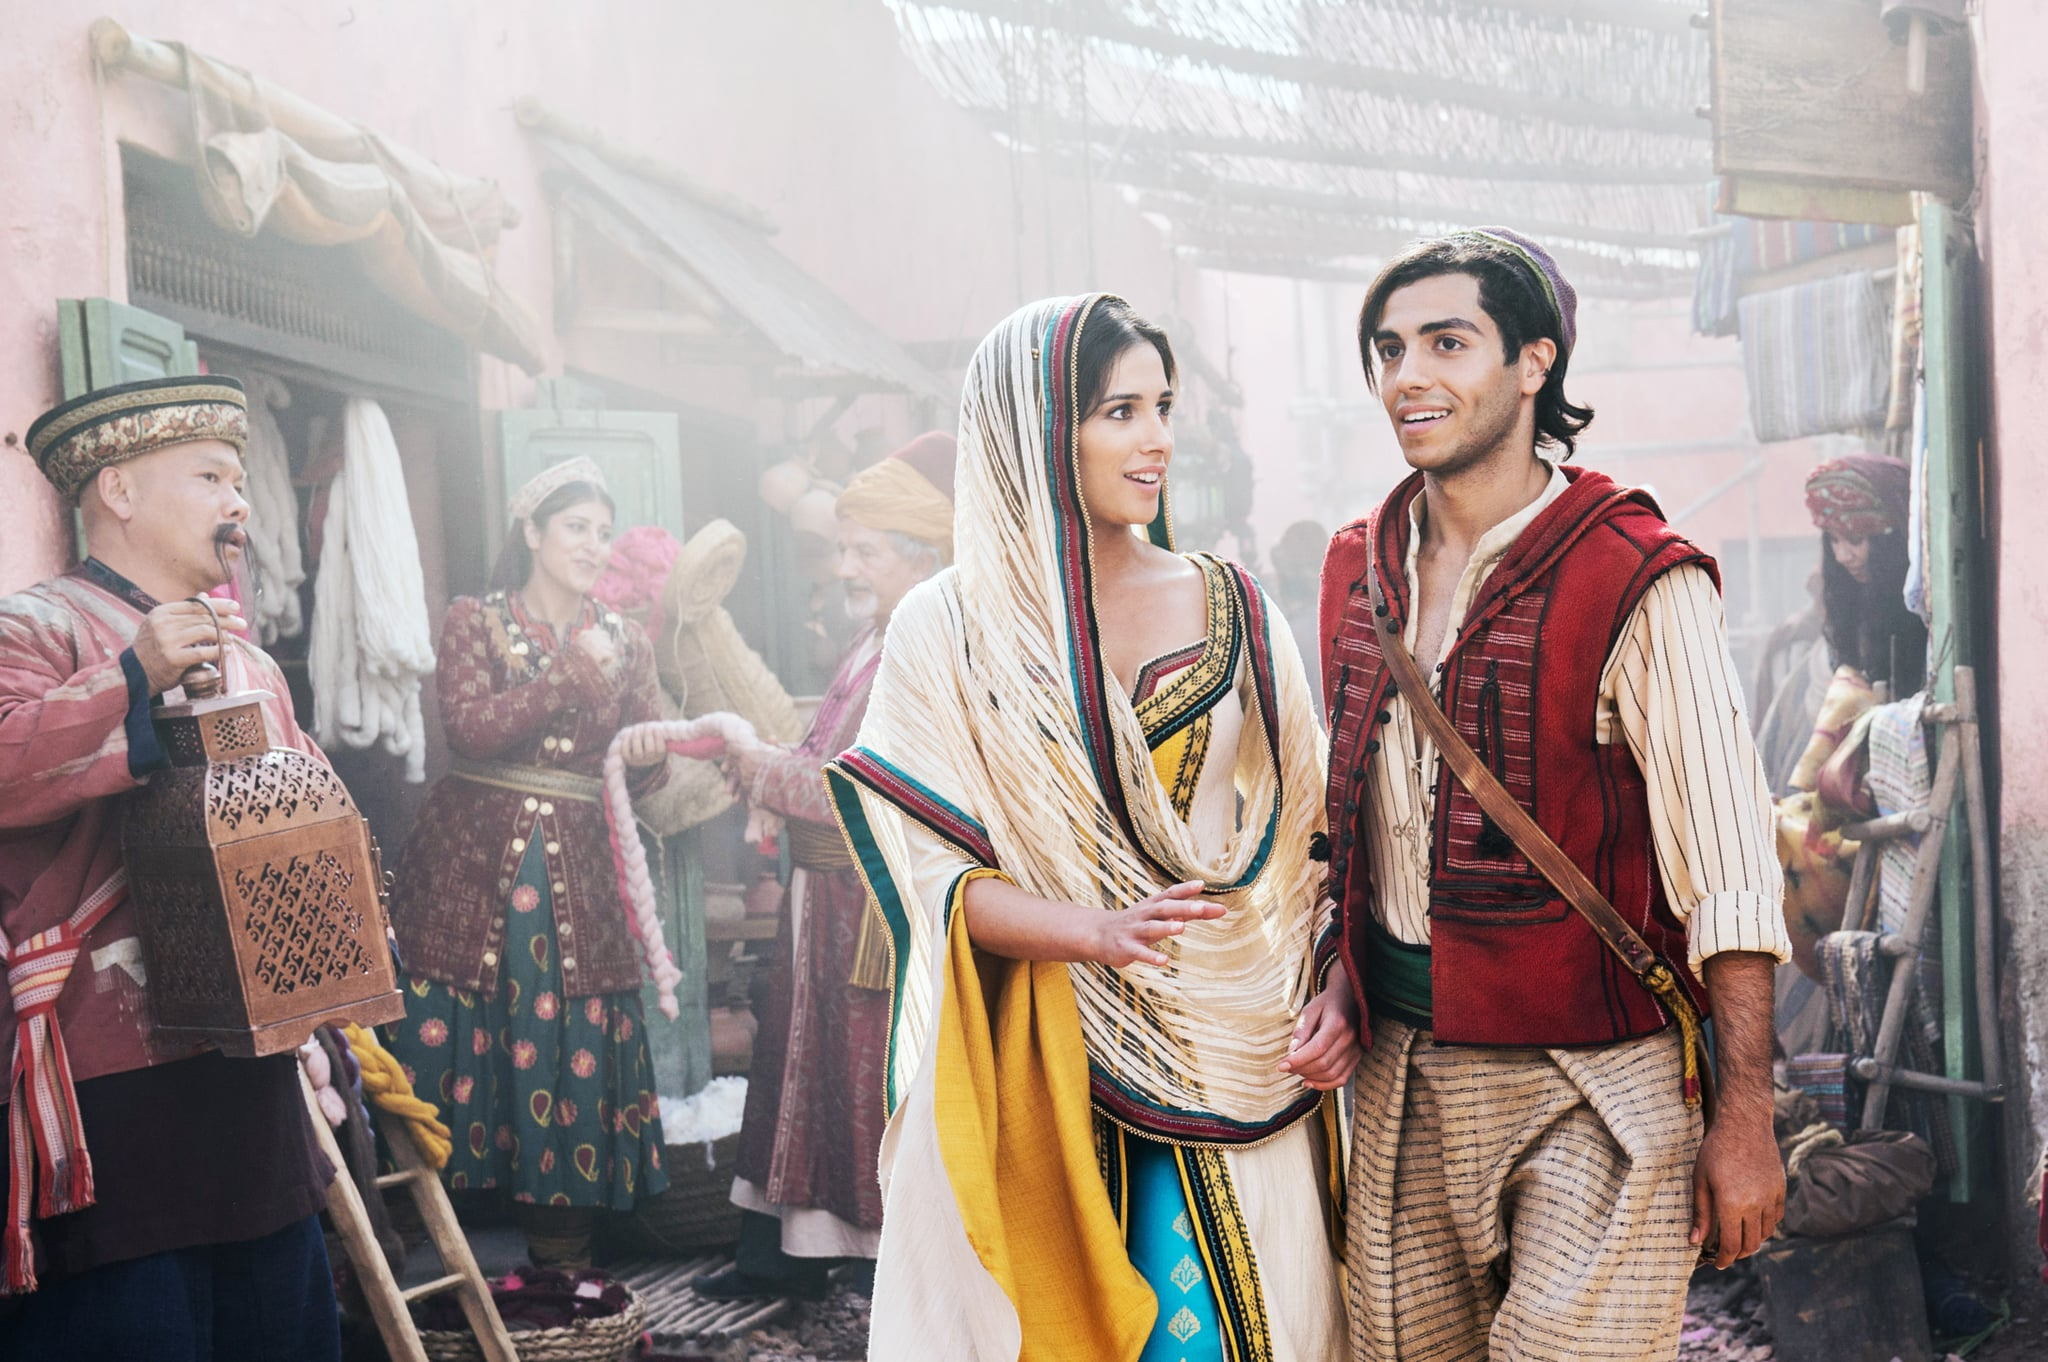 ALADDIN, from left: Naomi Scott as Jasmine, Mena Massoud as Aladdin, 2019. ph: Daniel Smith /  Walt Disney Studios Motion Pictures / courtesy Everett Collection